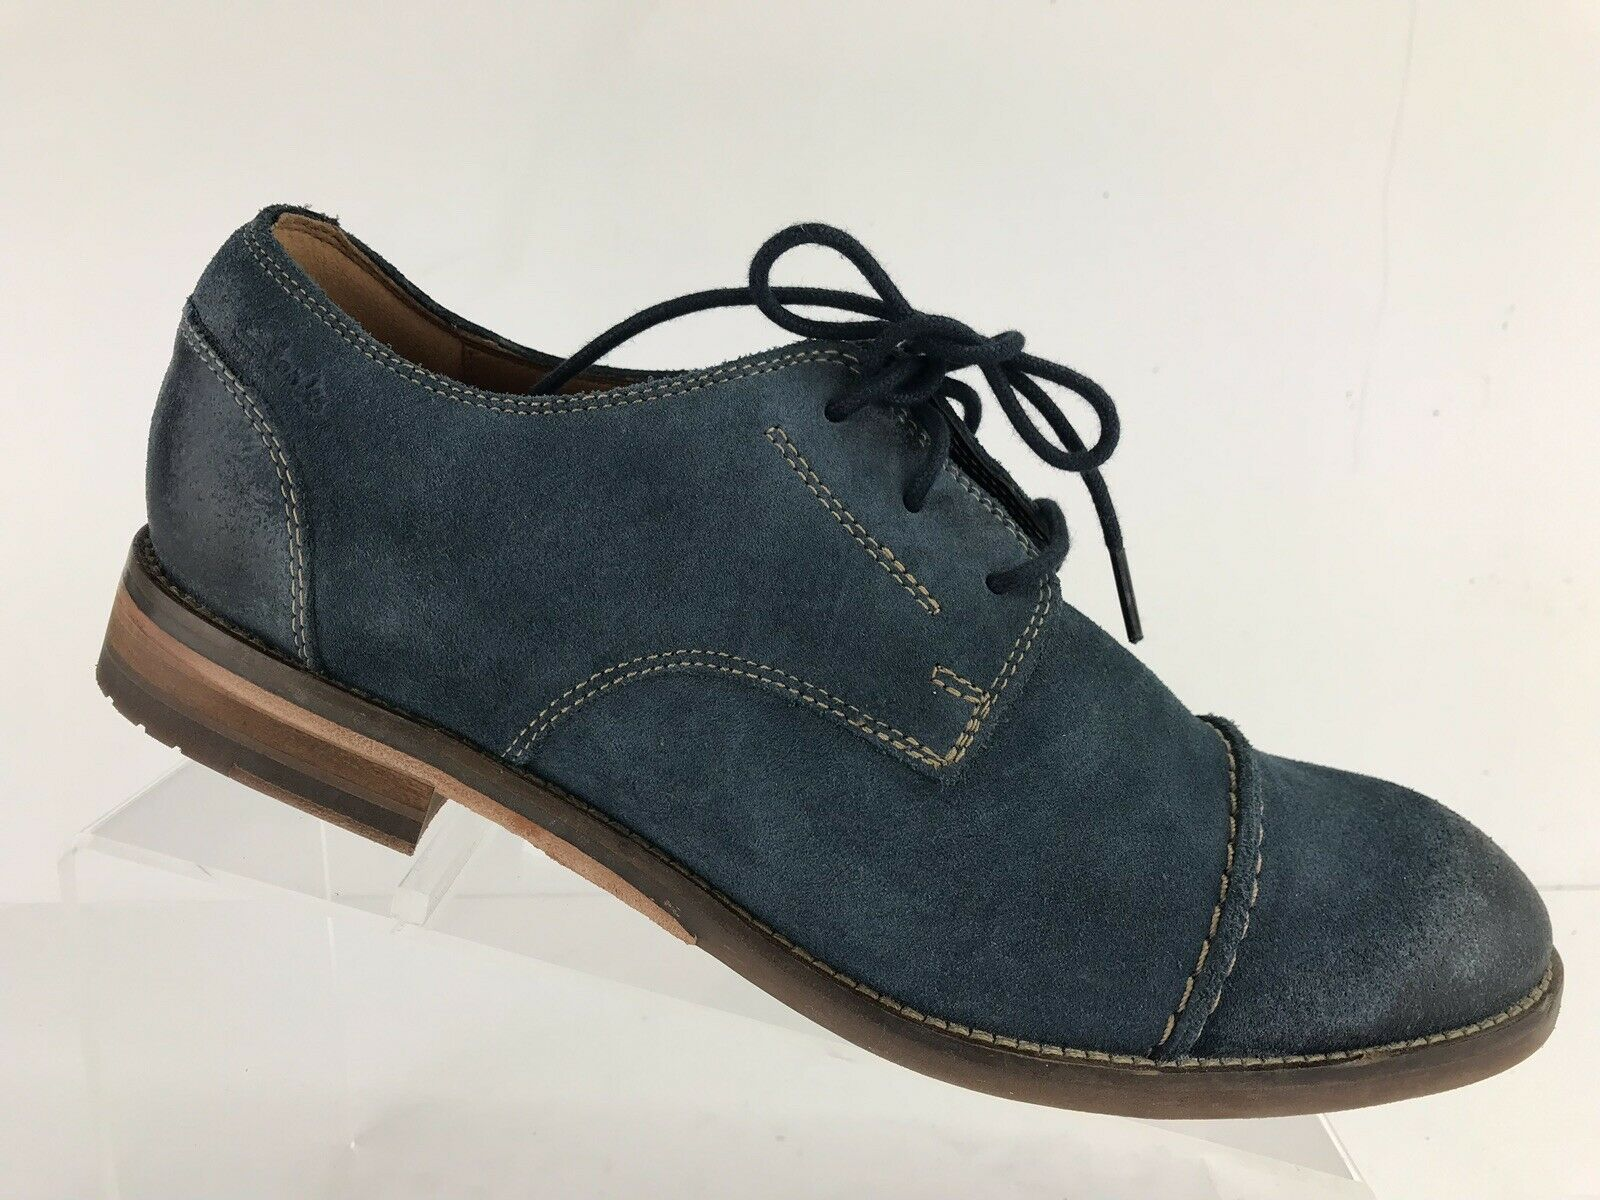 Clarks 1825 bluee Cap Toe Leather Oxford Dress Casual Style 16501 Men's 8.5 M